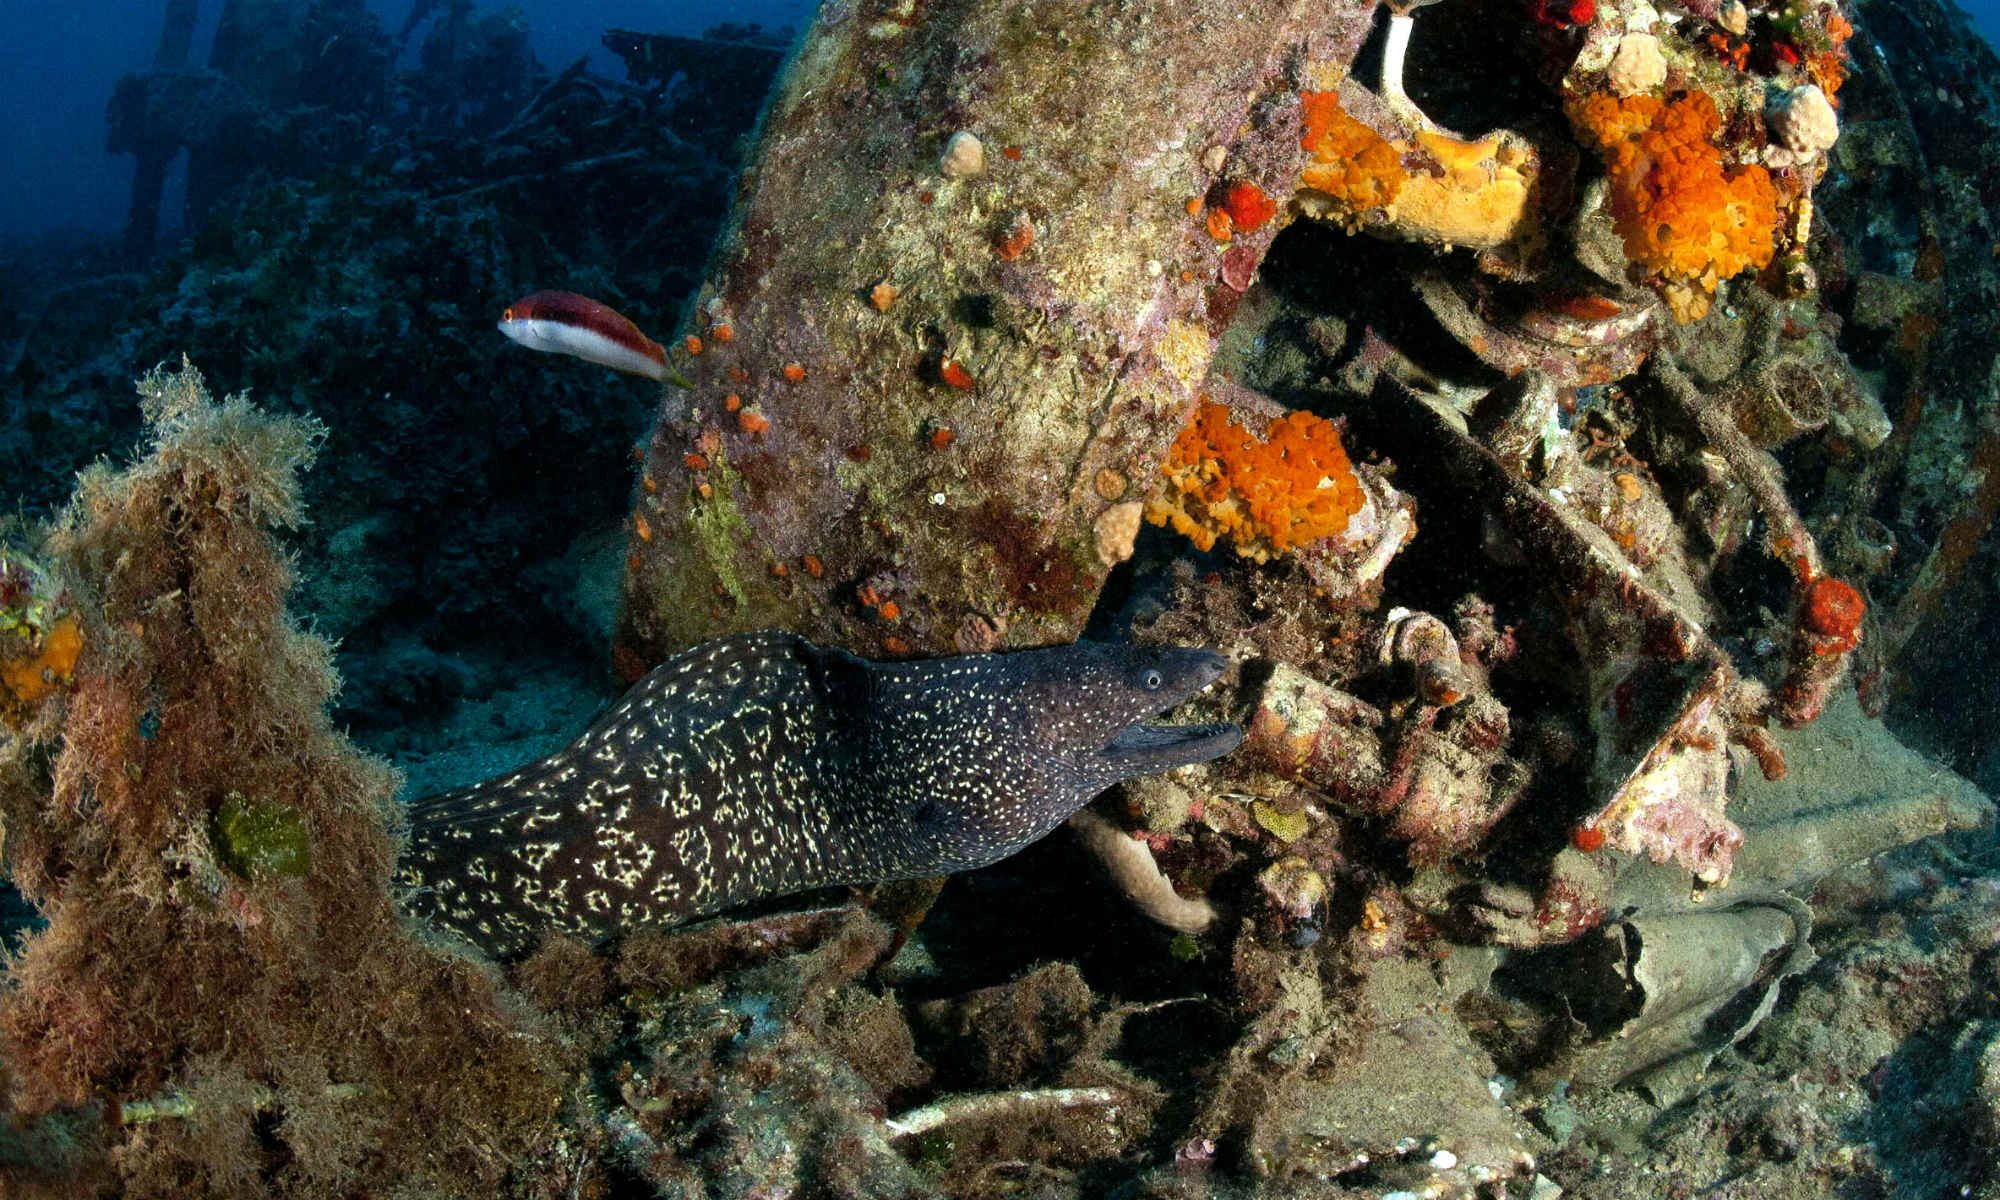 A moray eel is swimming past the Bristol Beaufighter aeroplane wreck, as captured by an underwater photographer scuba diving in Malta.